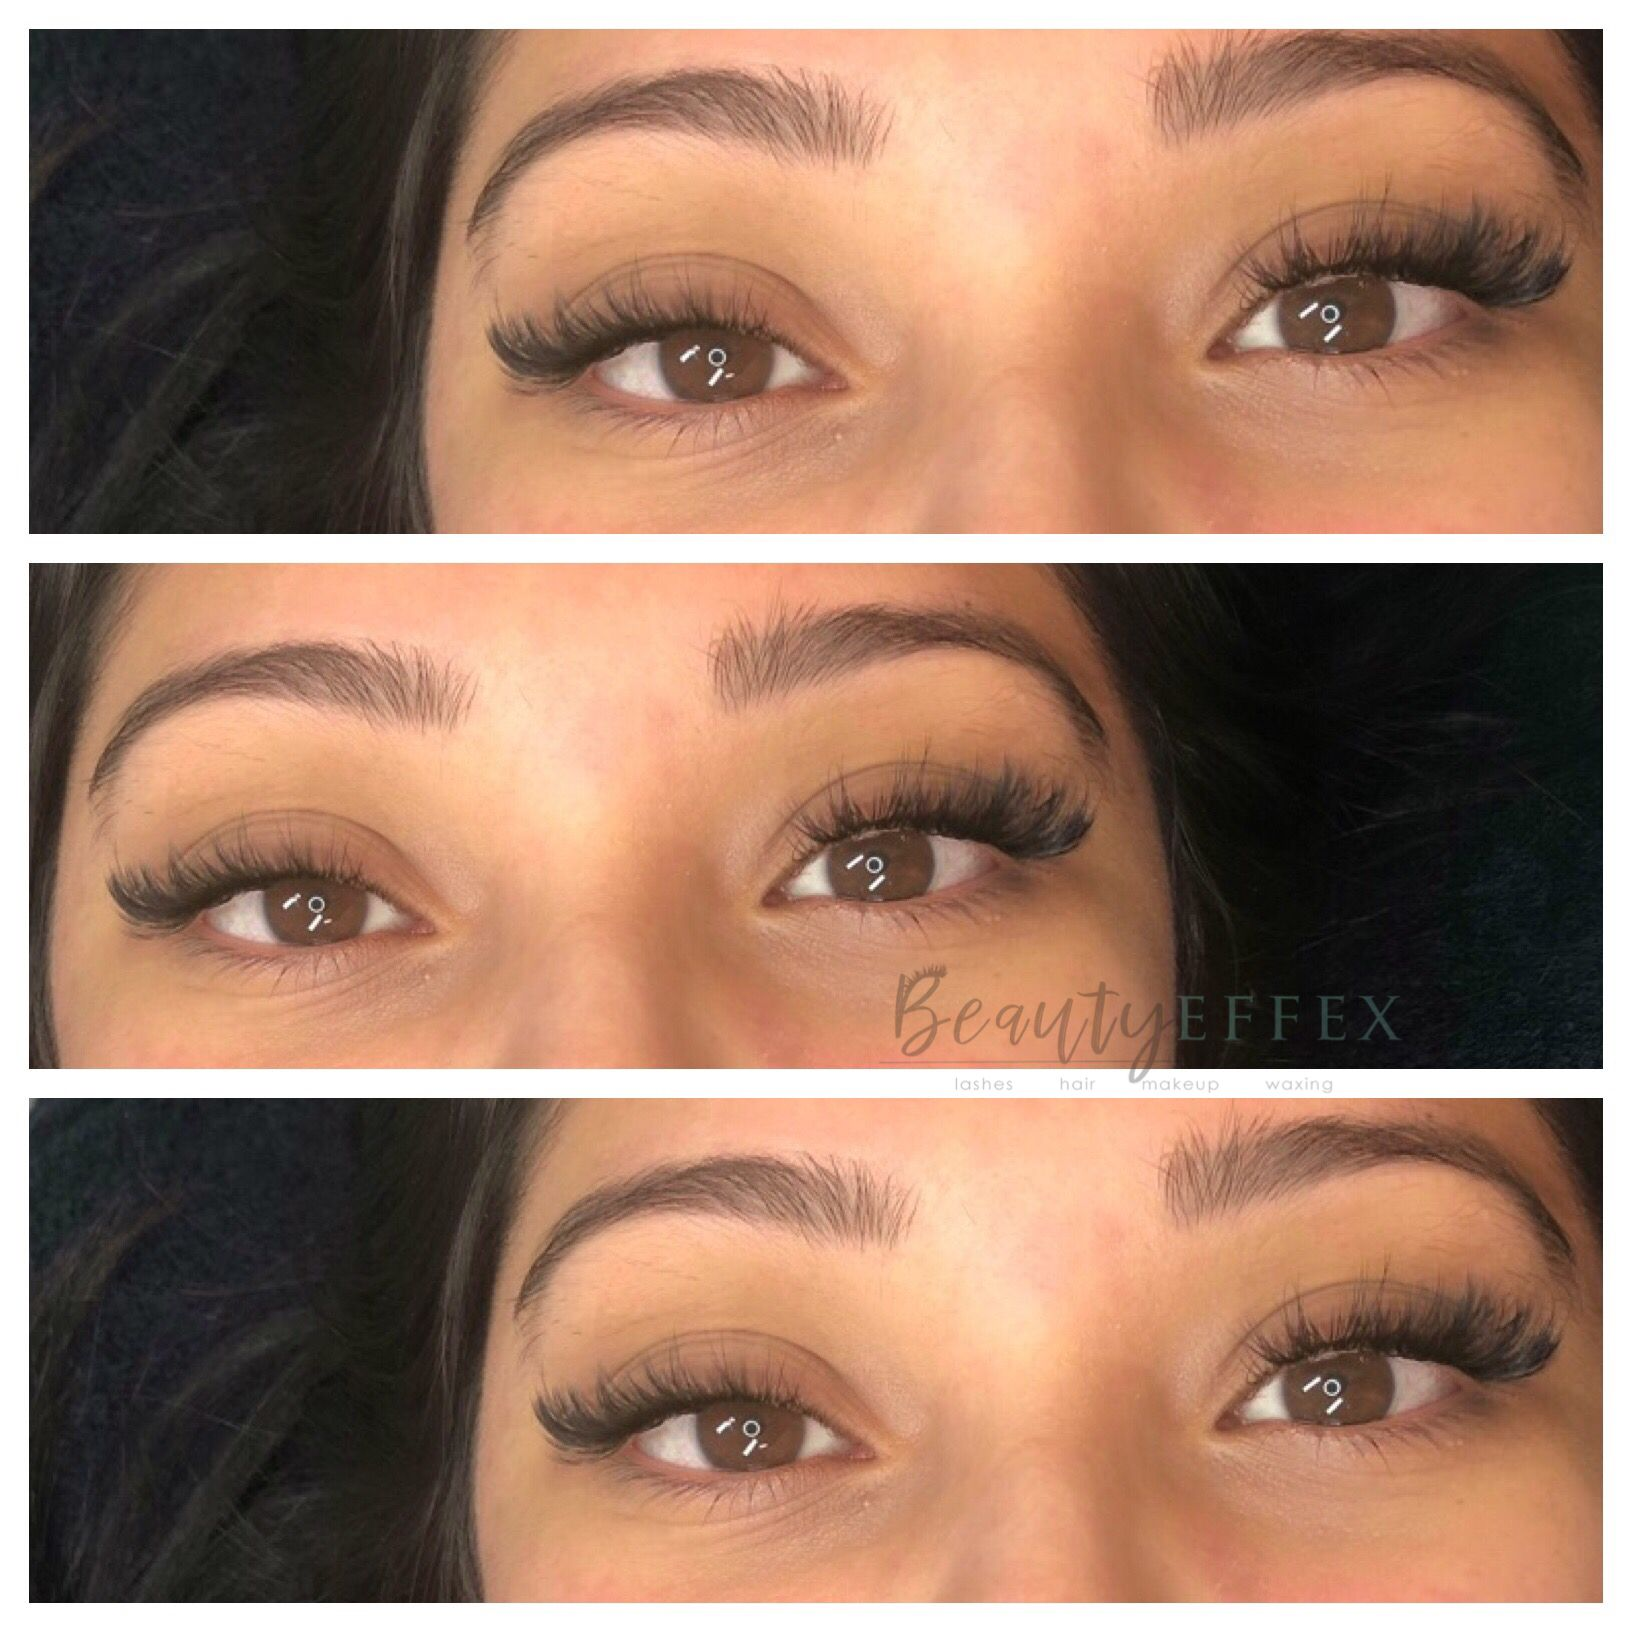 aec88524052 Transitioned this beauty from classic to hybrid lashes. 9-12mm kitten  styling C/cc curl. By Beauty Effex